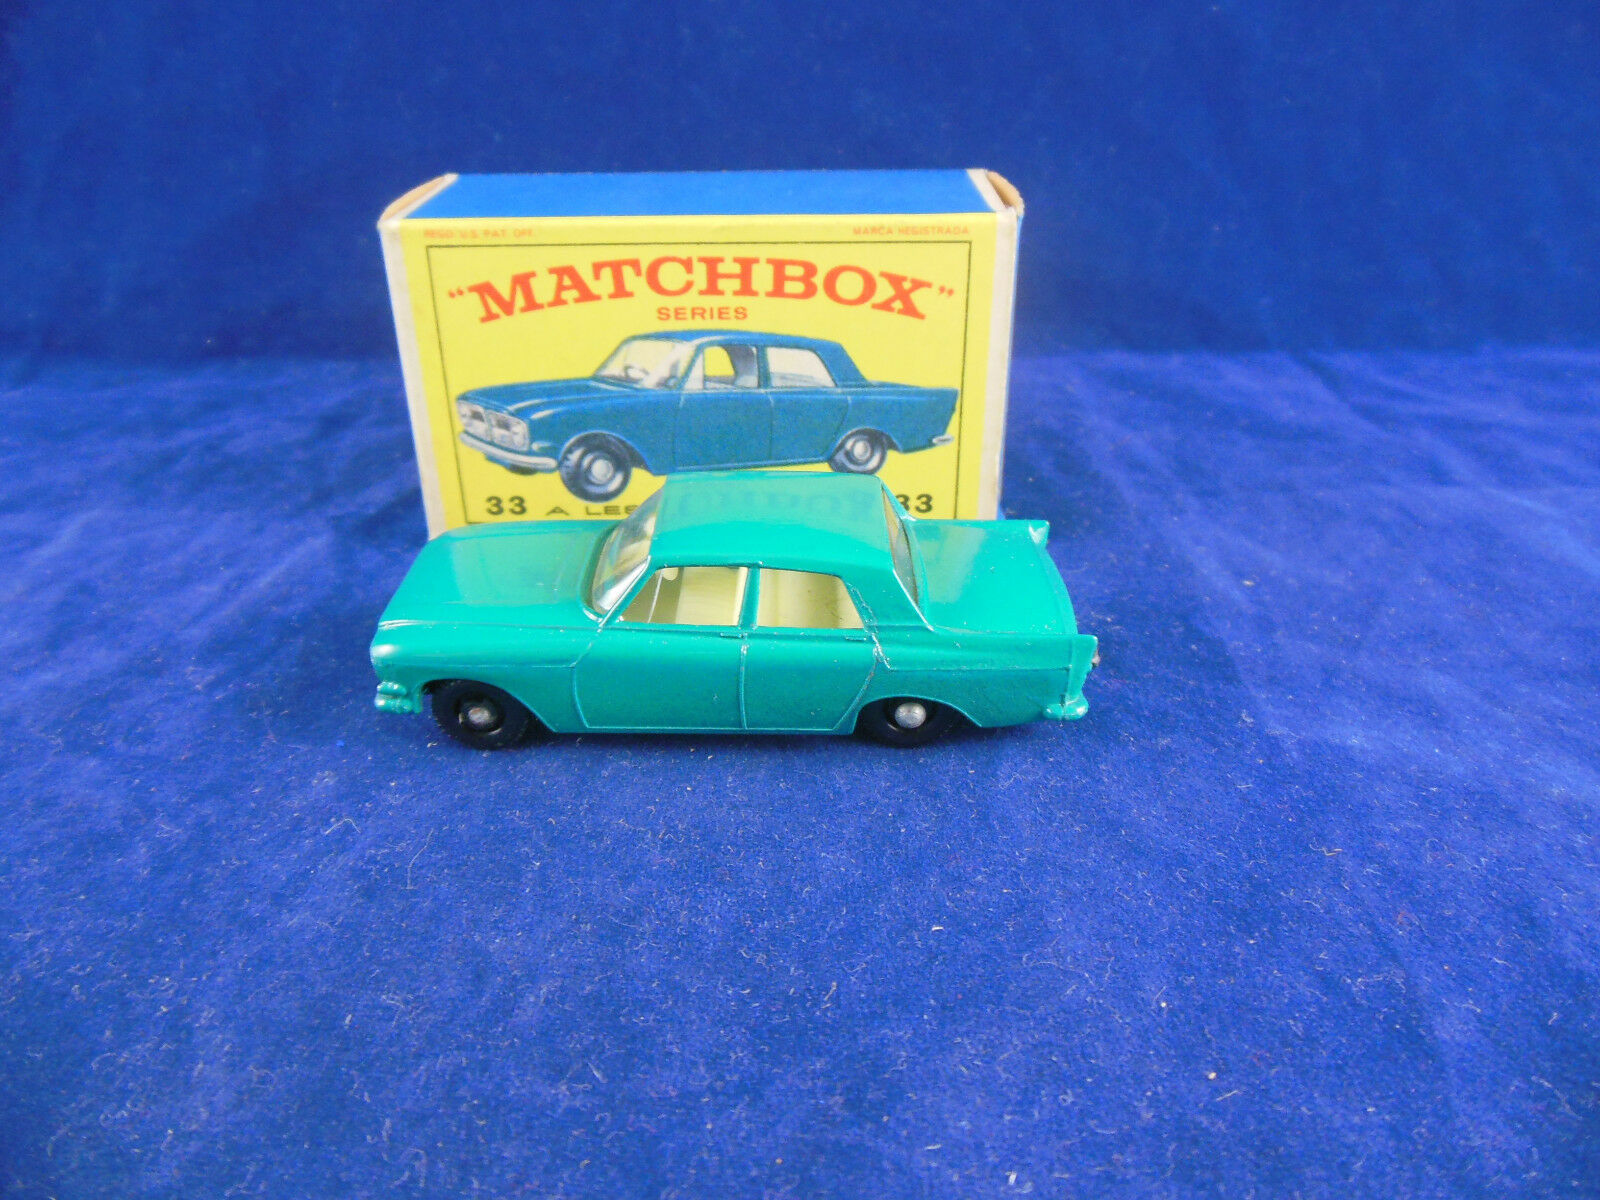 MATCHBOX REGULAR WHEELS Nº 33 FORD ZEPHYR 6 in (environ 15.24 cm) Dark Turquoise Corps